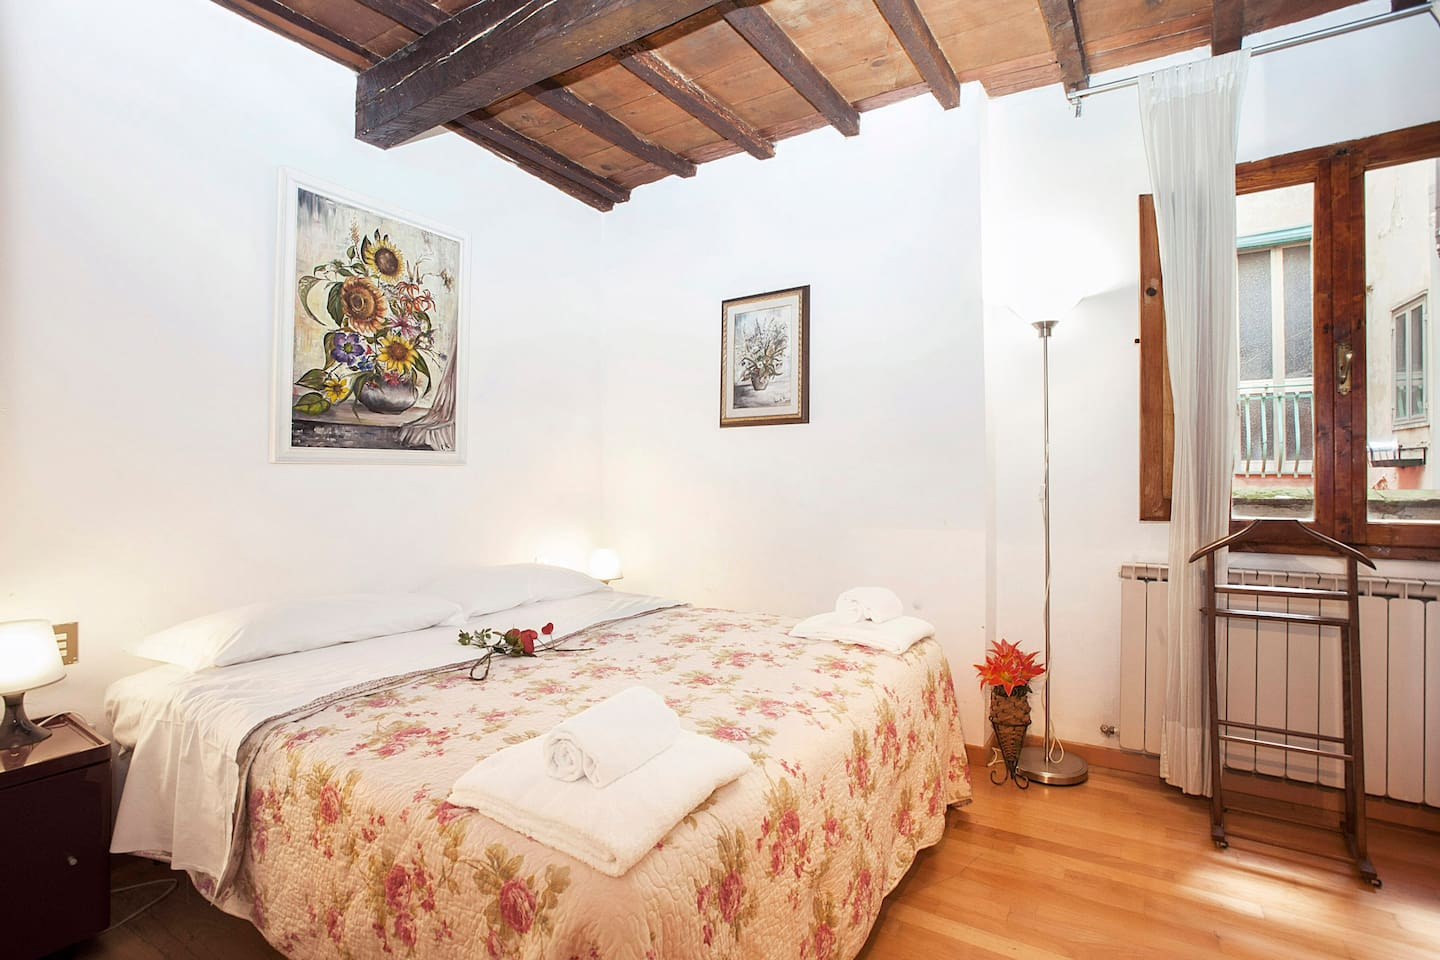 4 Guests Beautiful apartment a short stroll from Florence central station and close to Piazza Santa Maria Novella.